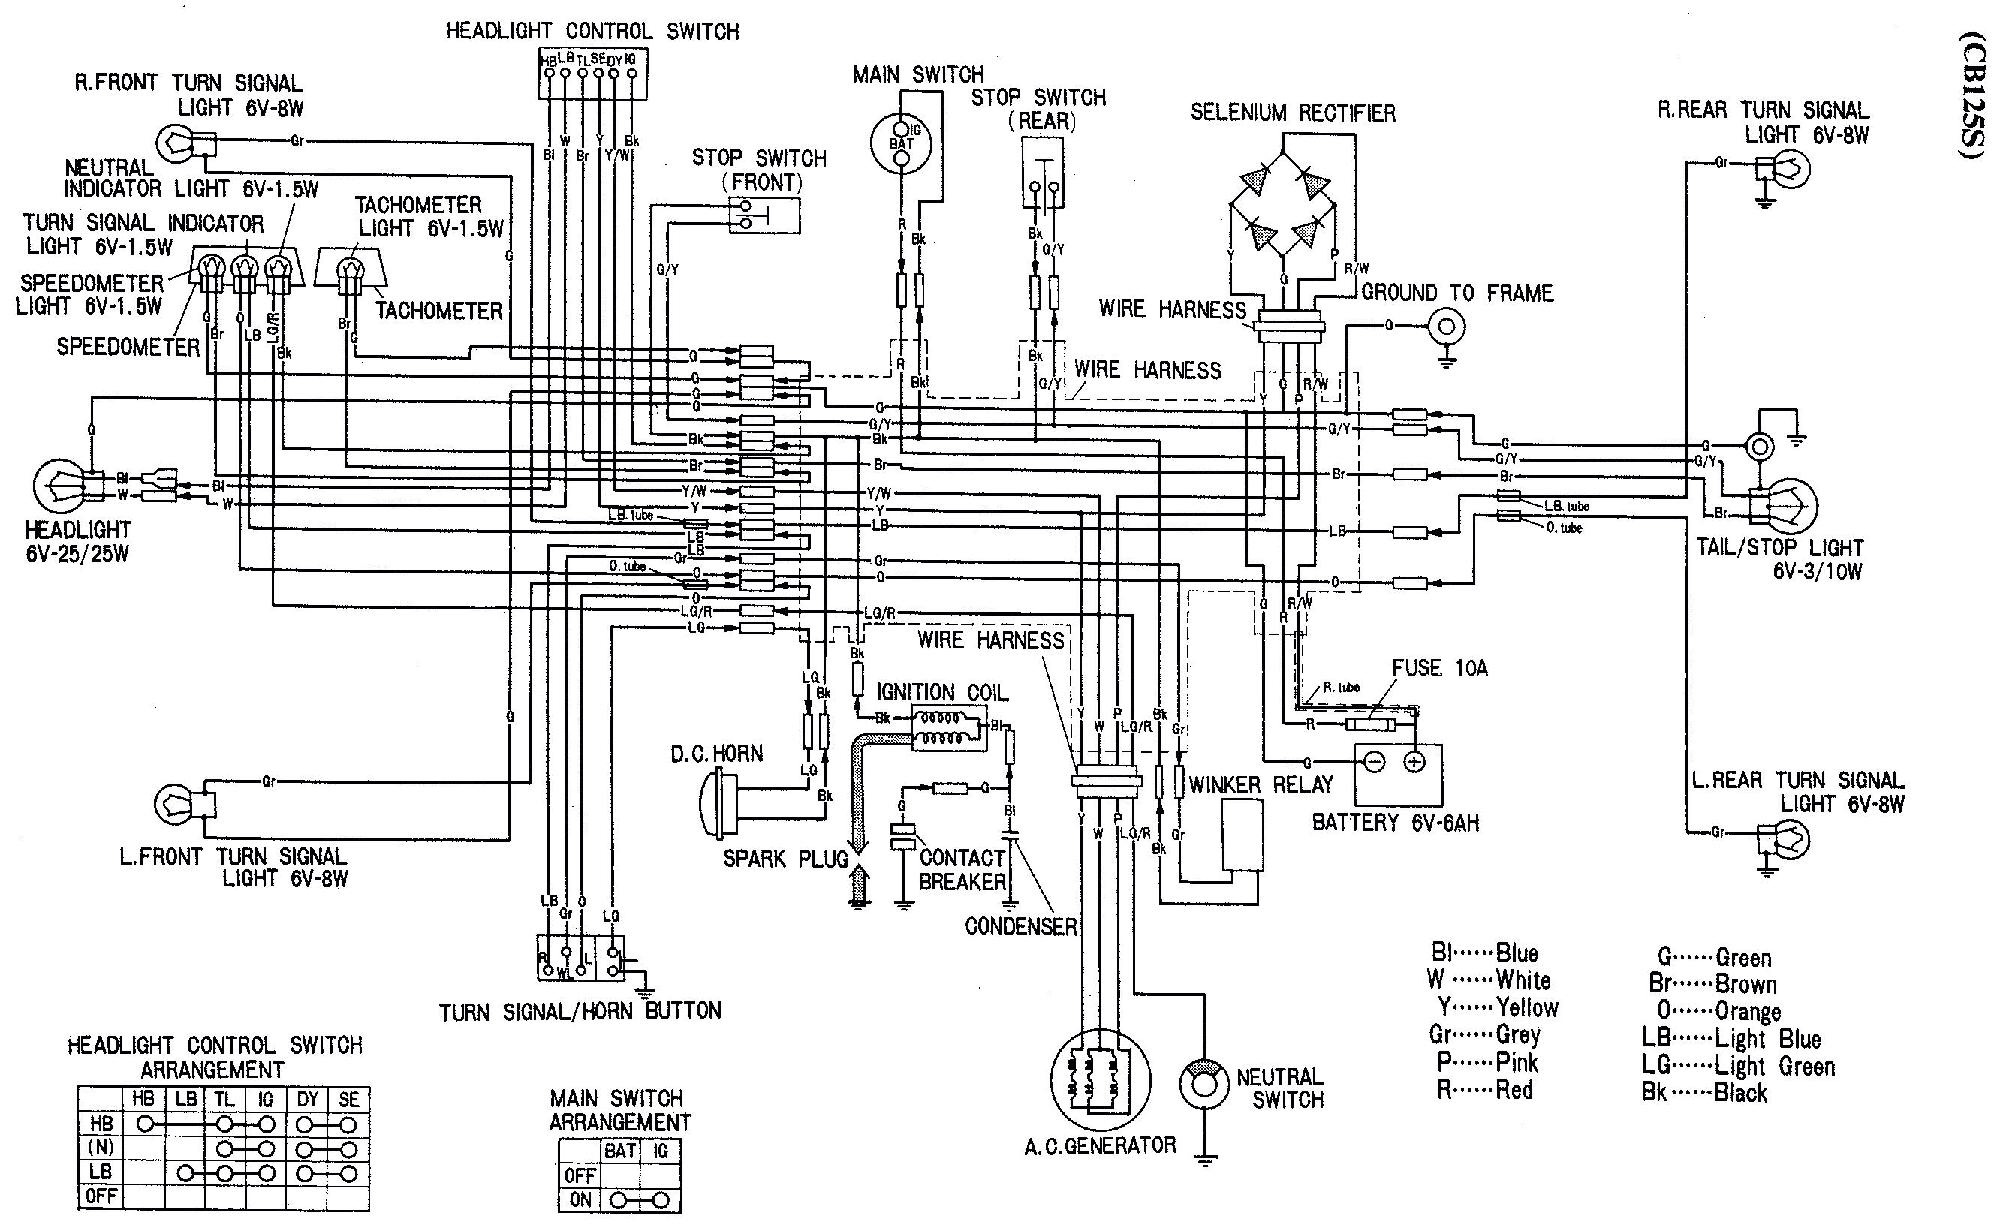 lenel 2220 wiring diagram home stereo system cb125s frying